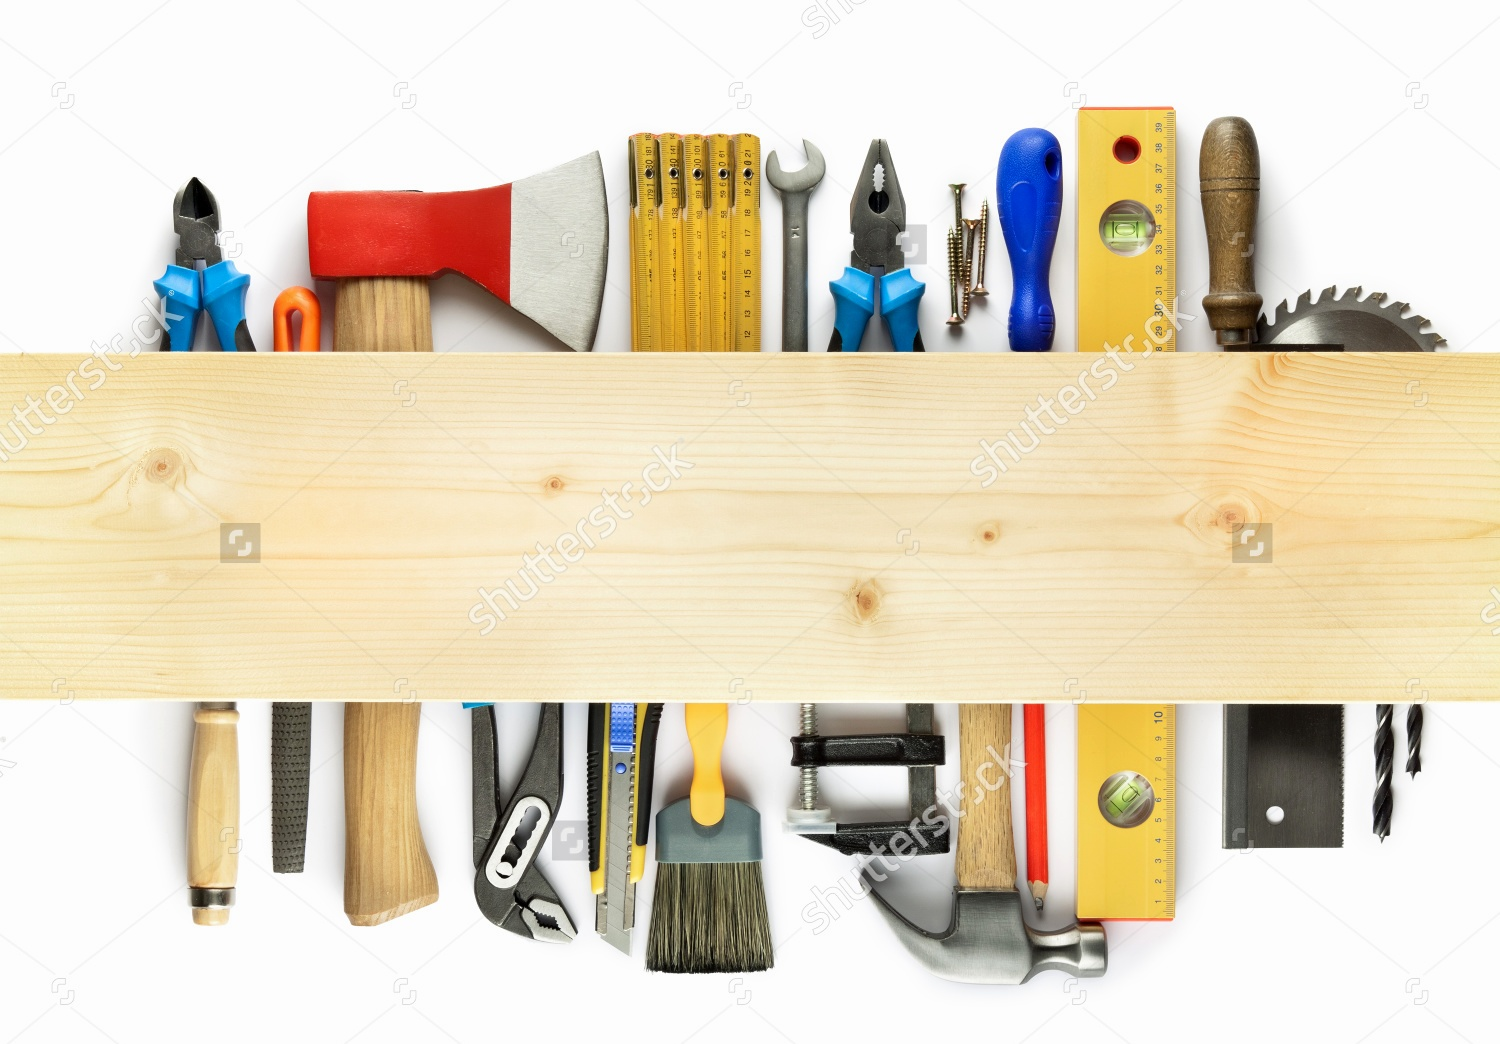 stock-photo-carpentry-background-tools-underneath-the-wood-plank-86270278